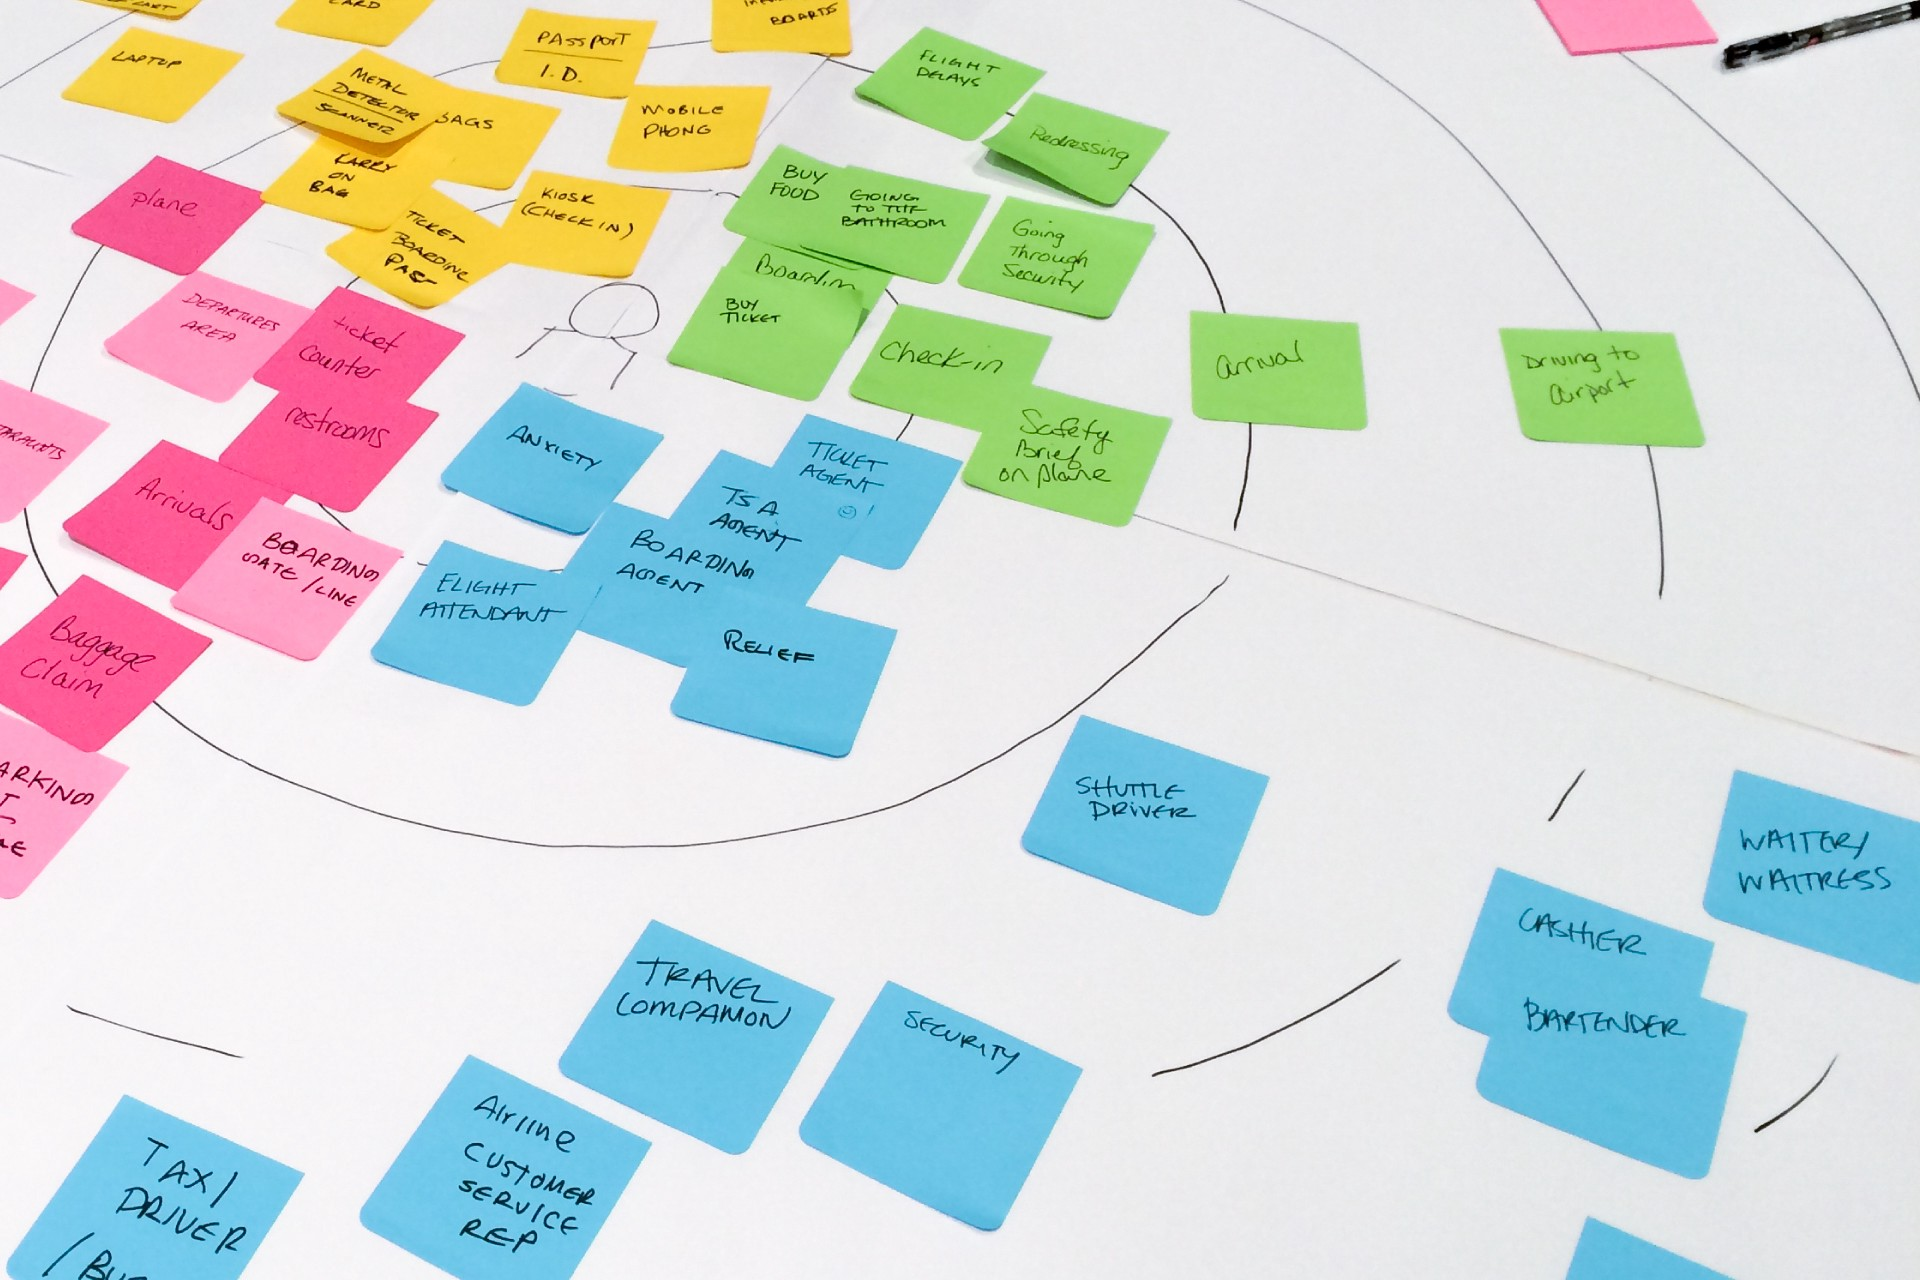 Why human-centered design is an expectation.